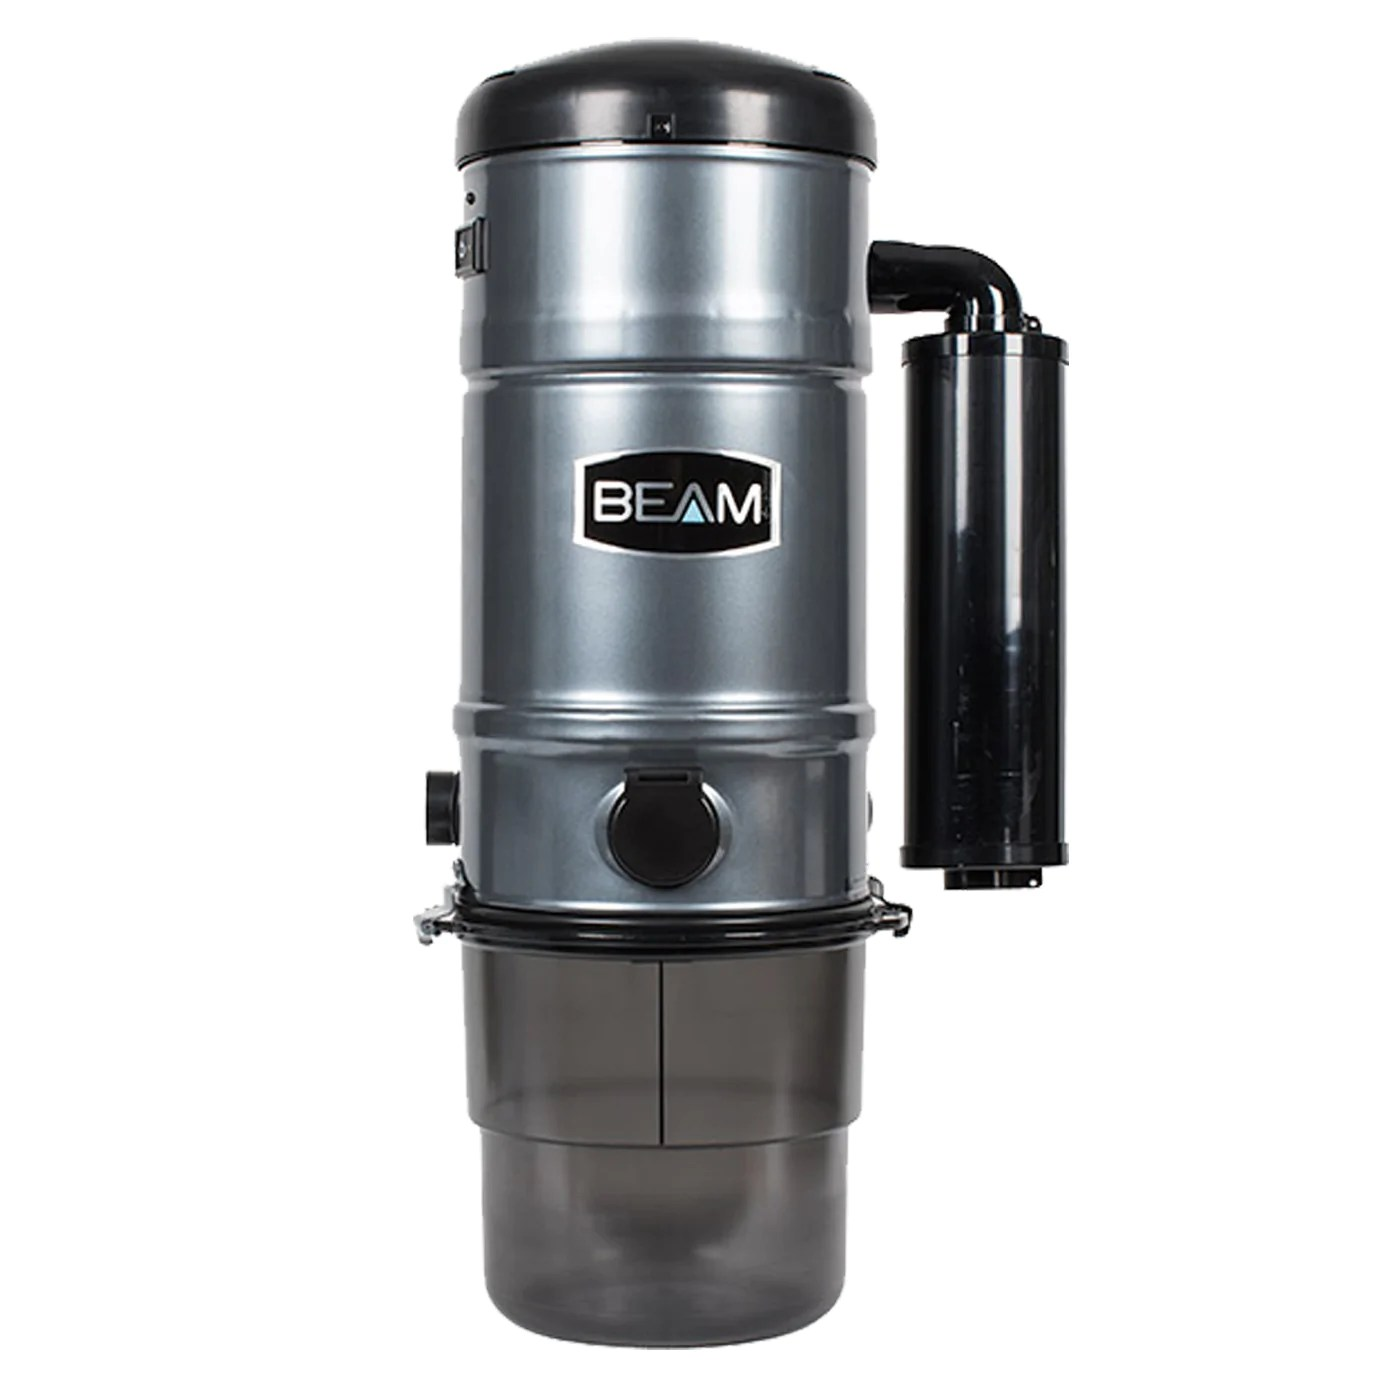 small resolution of beam serenity 325d central vacuum canister